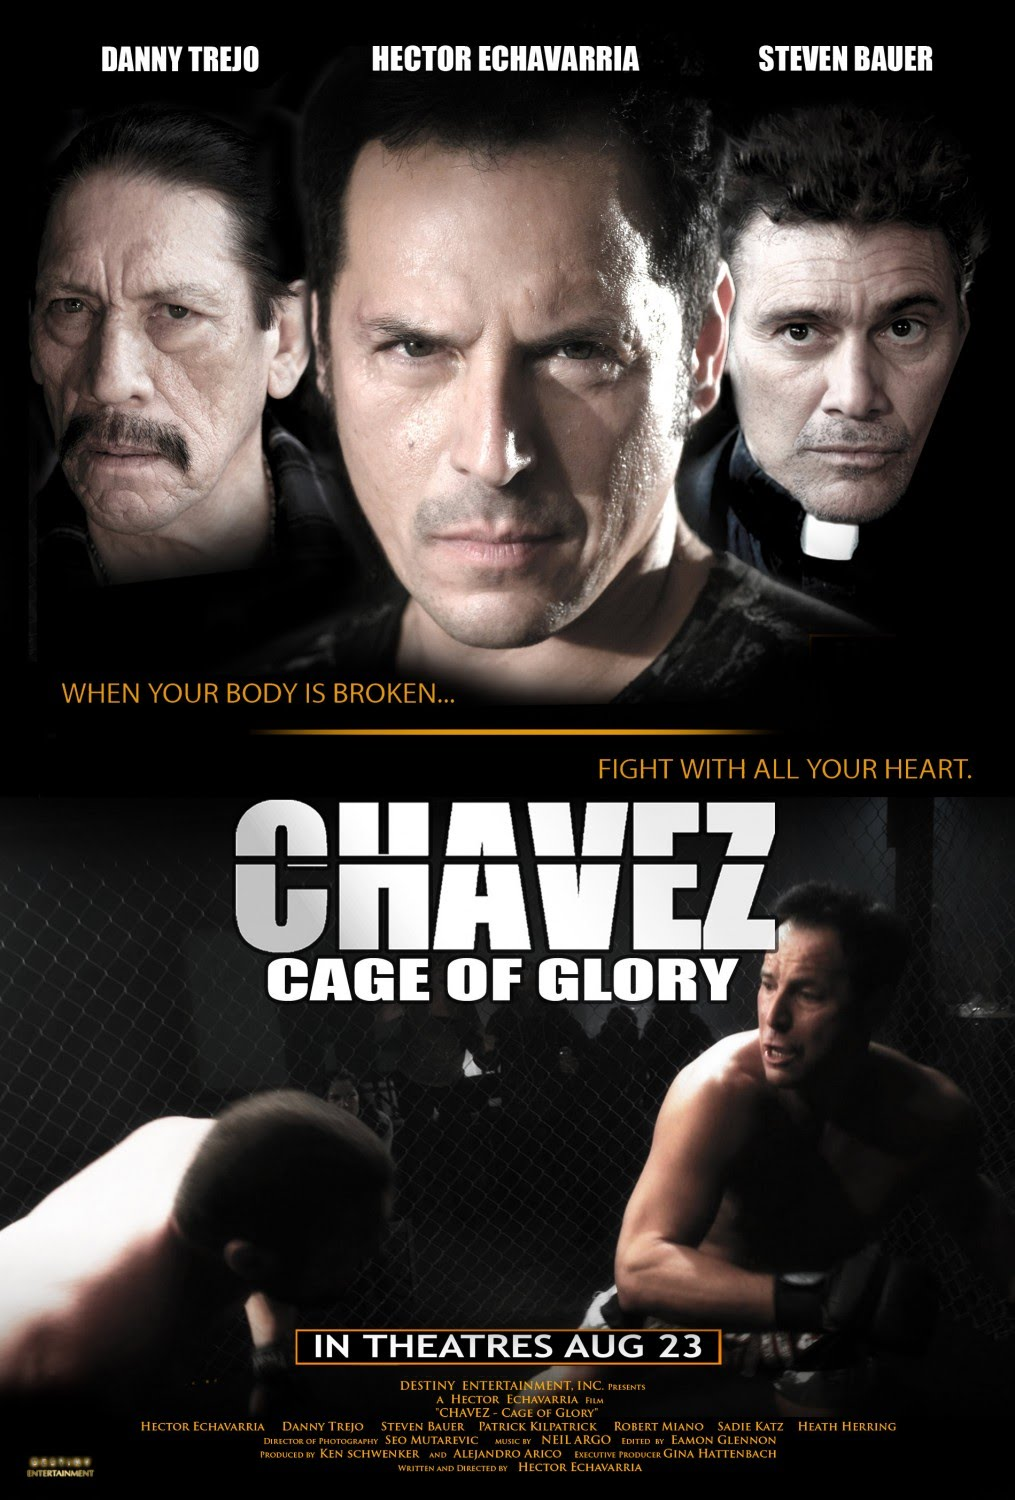 Chavez Cage of Glory Movie HD watch